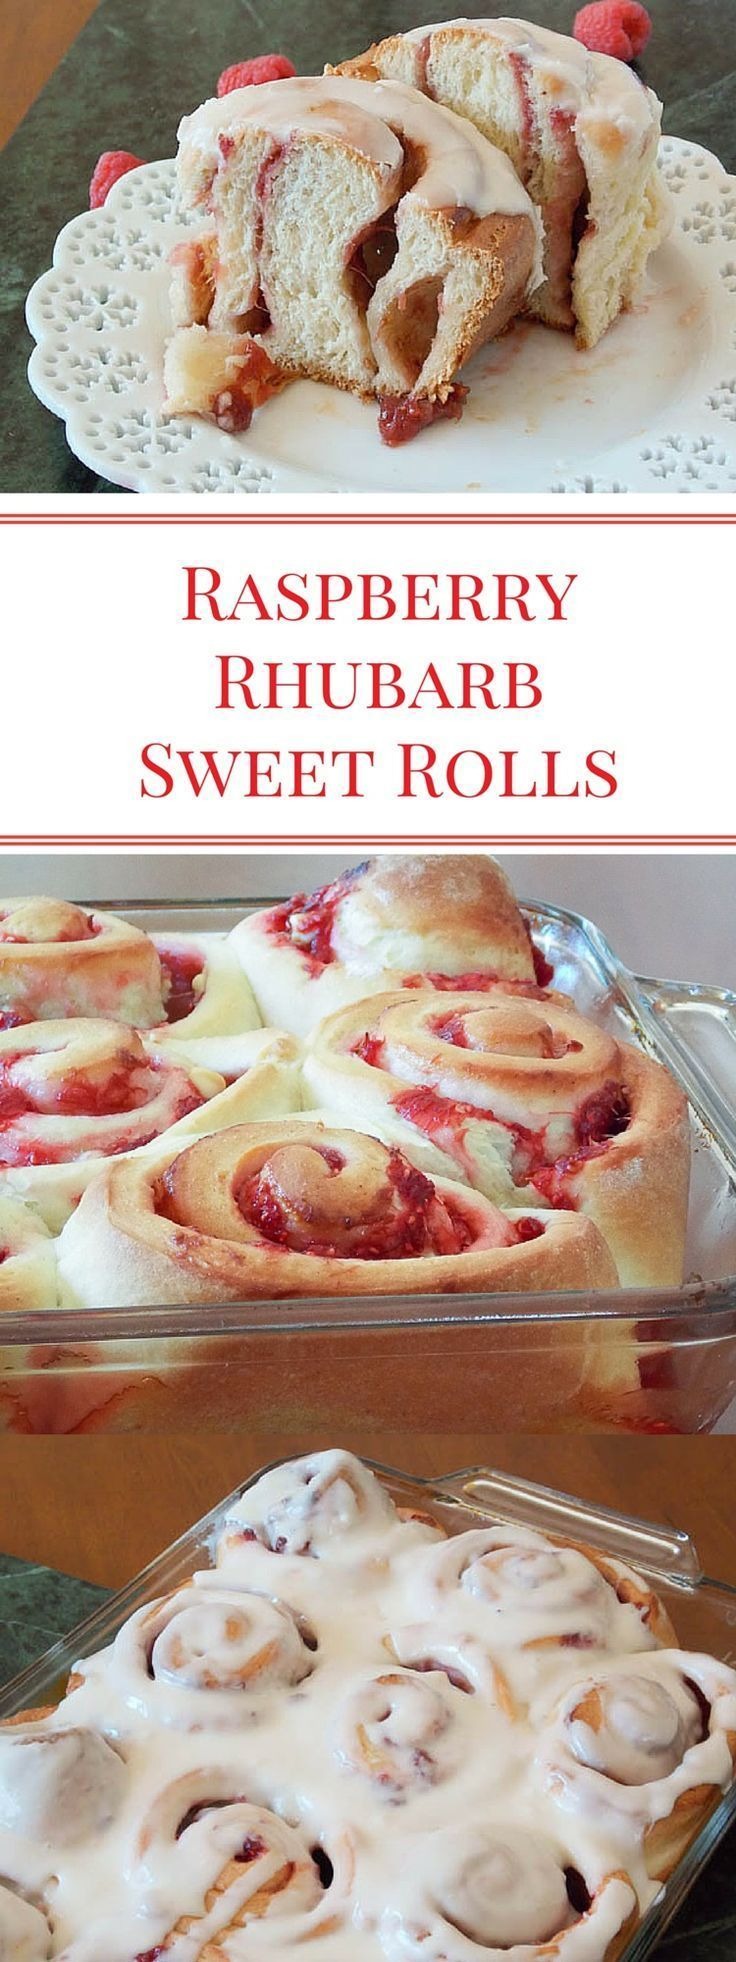 Raspberries and Rhubarb, cooked down with a little sugar and thickened into a sauce made a very delicious filling for this sweet roll dough! #SundaySupper